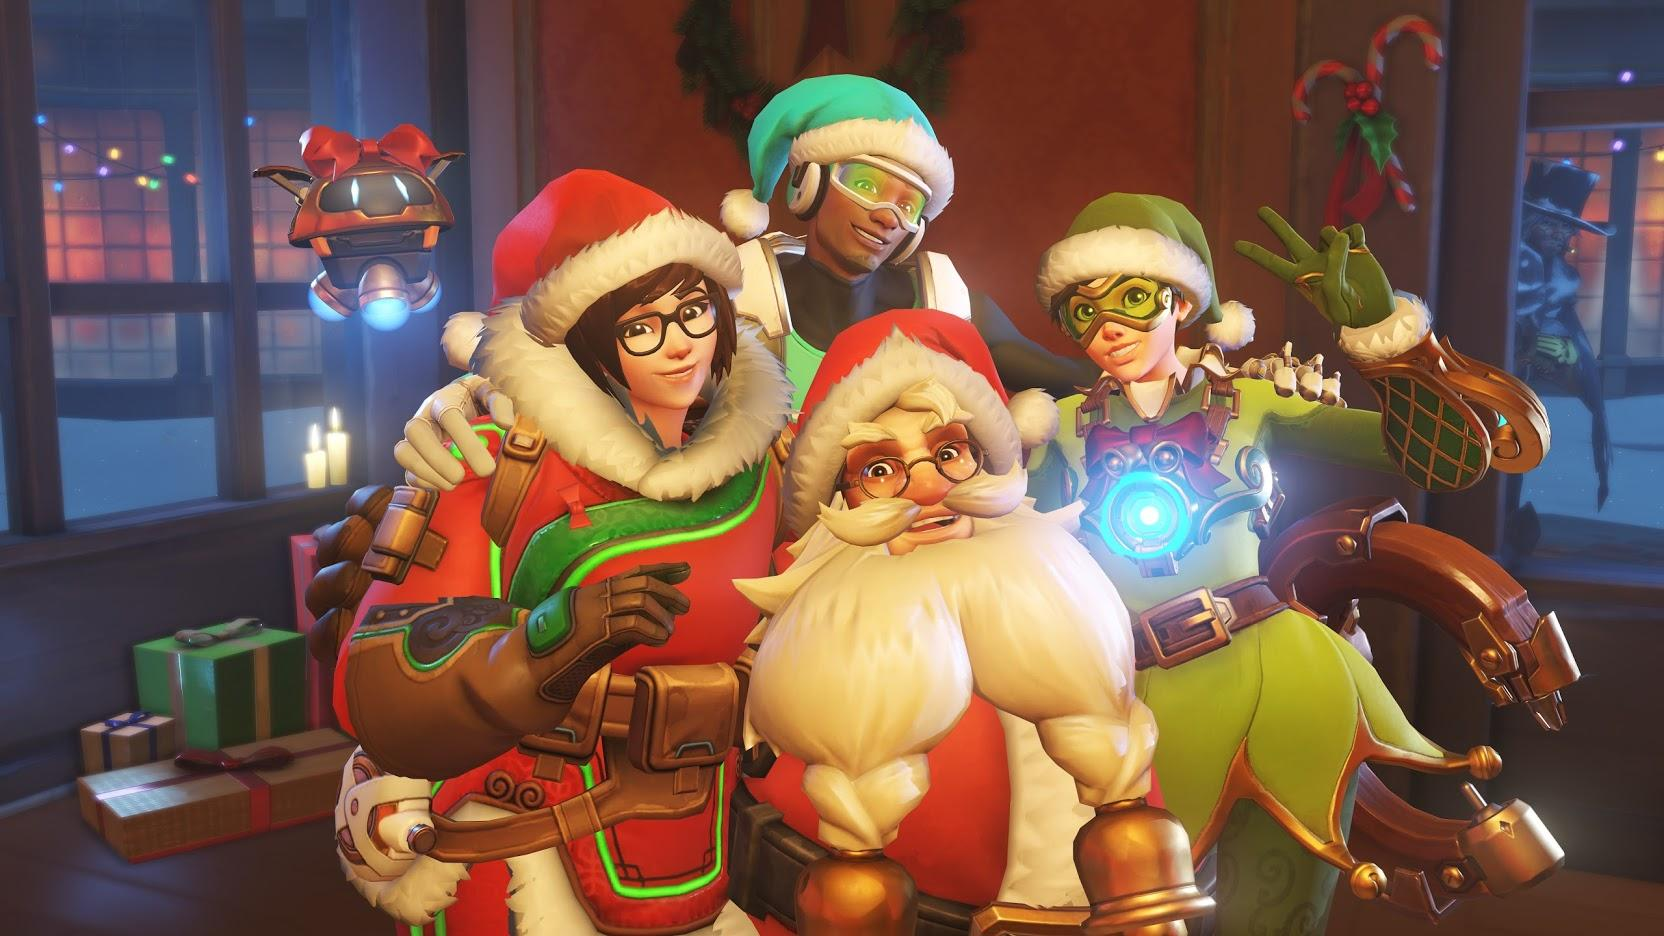 Overwatch's holiday event has a five-on-one Yeti boss fight mode